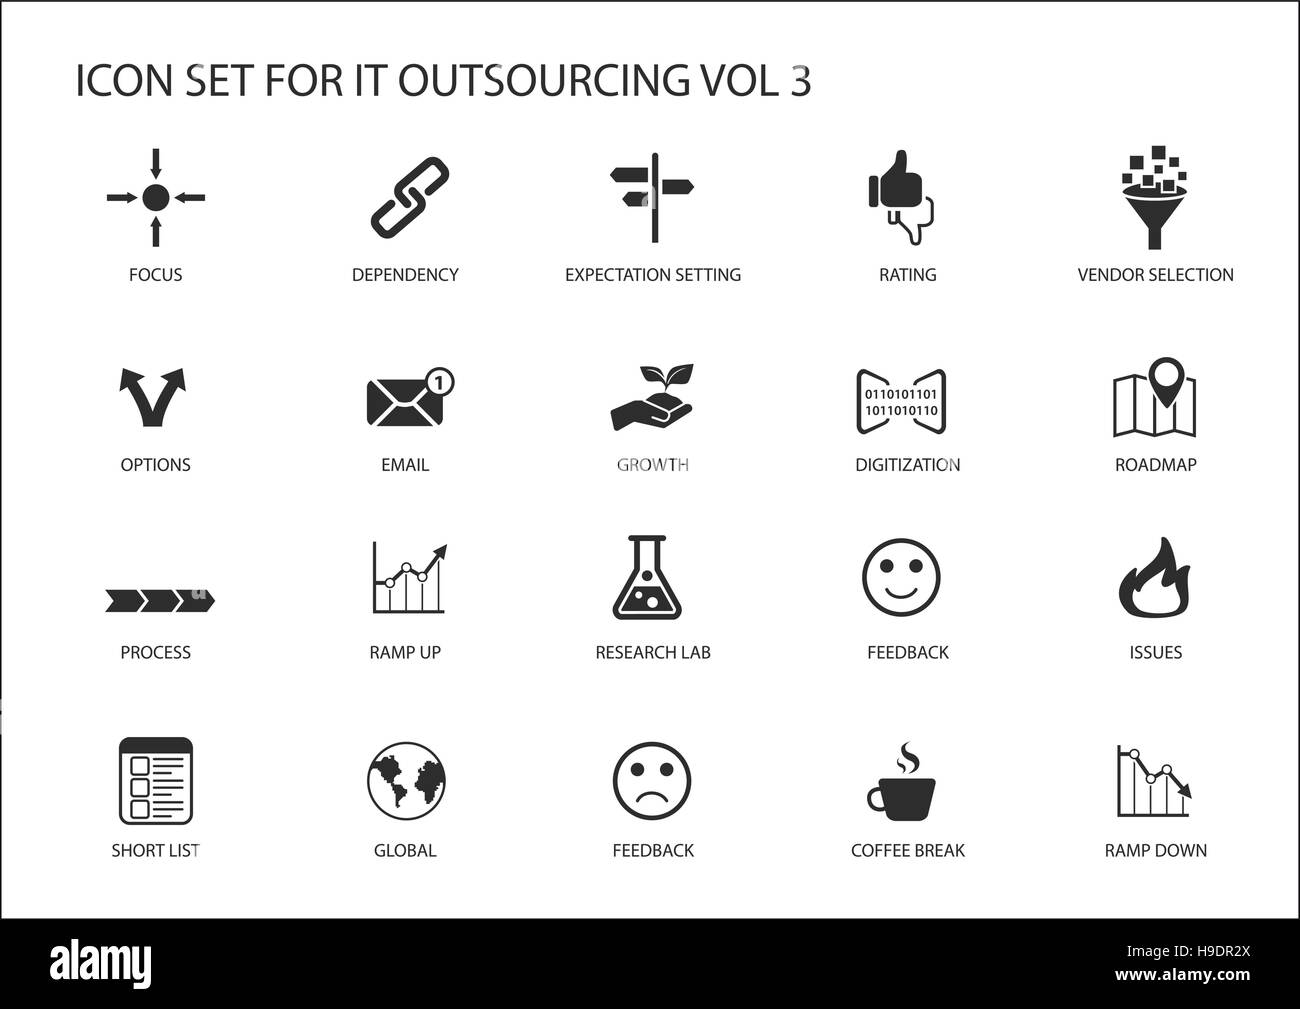 Various IT Outsourcing and offshore model vector icons for a global operating model - Stock Image